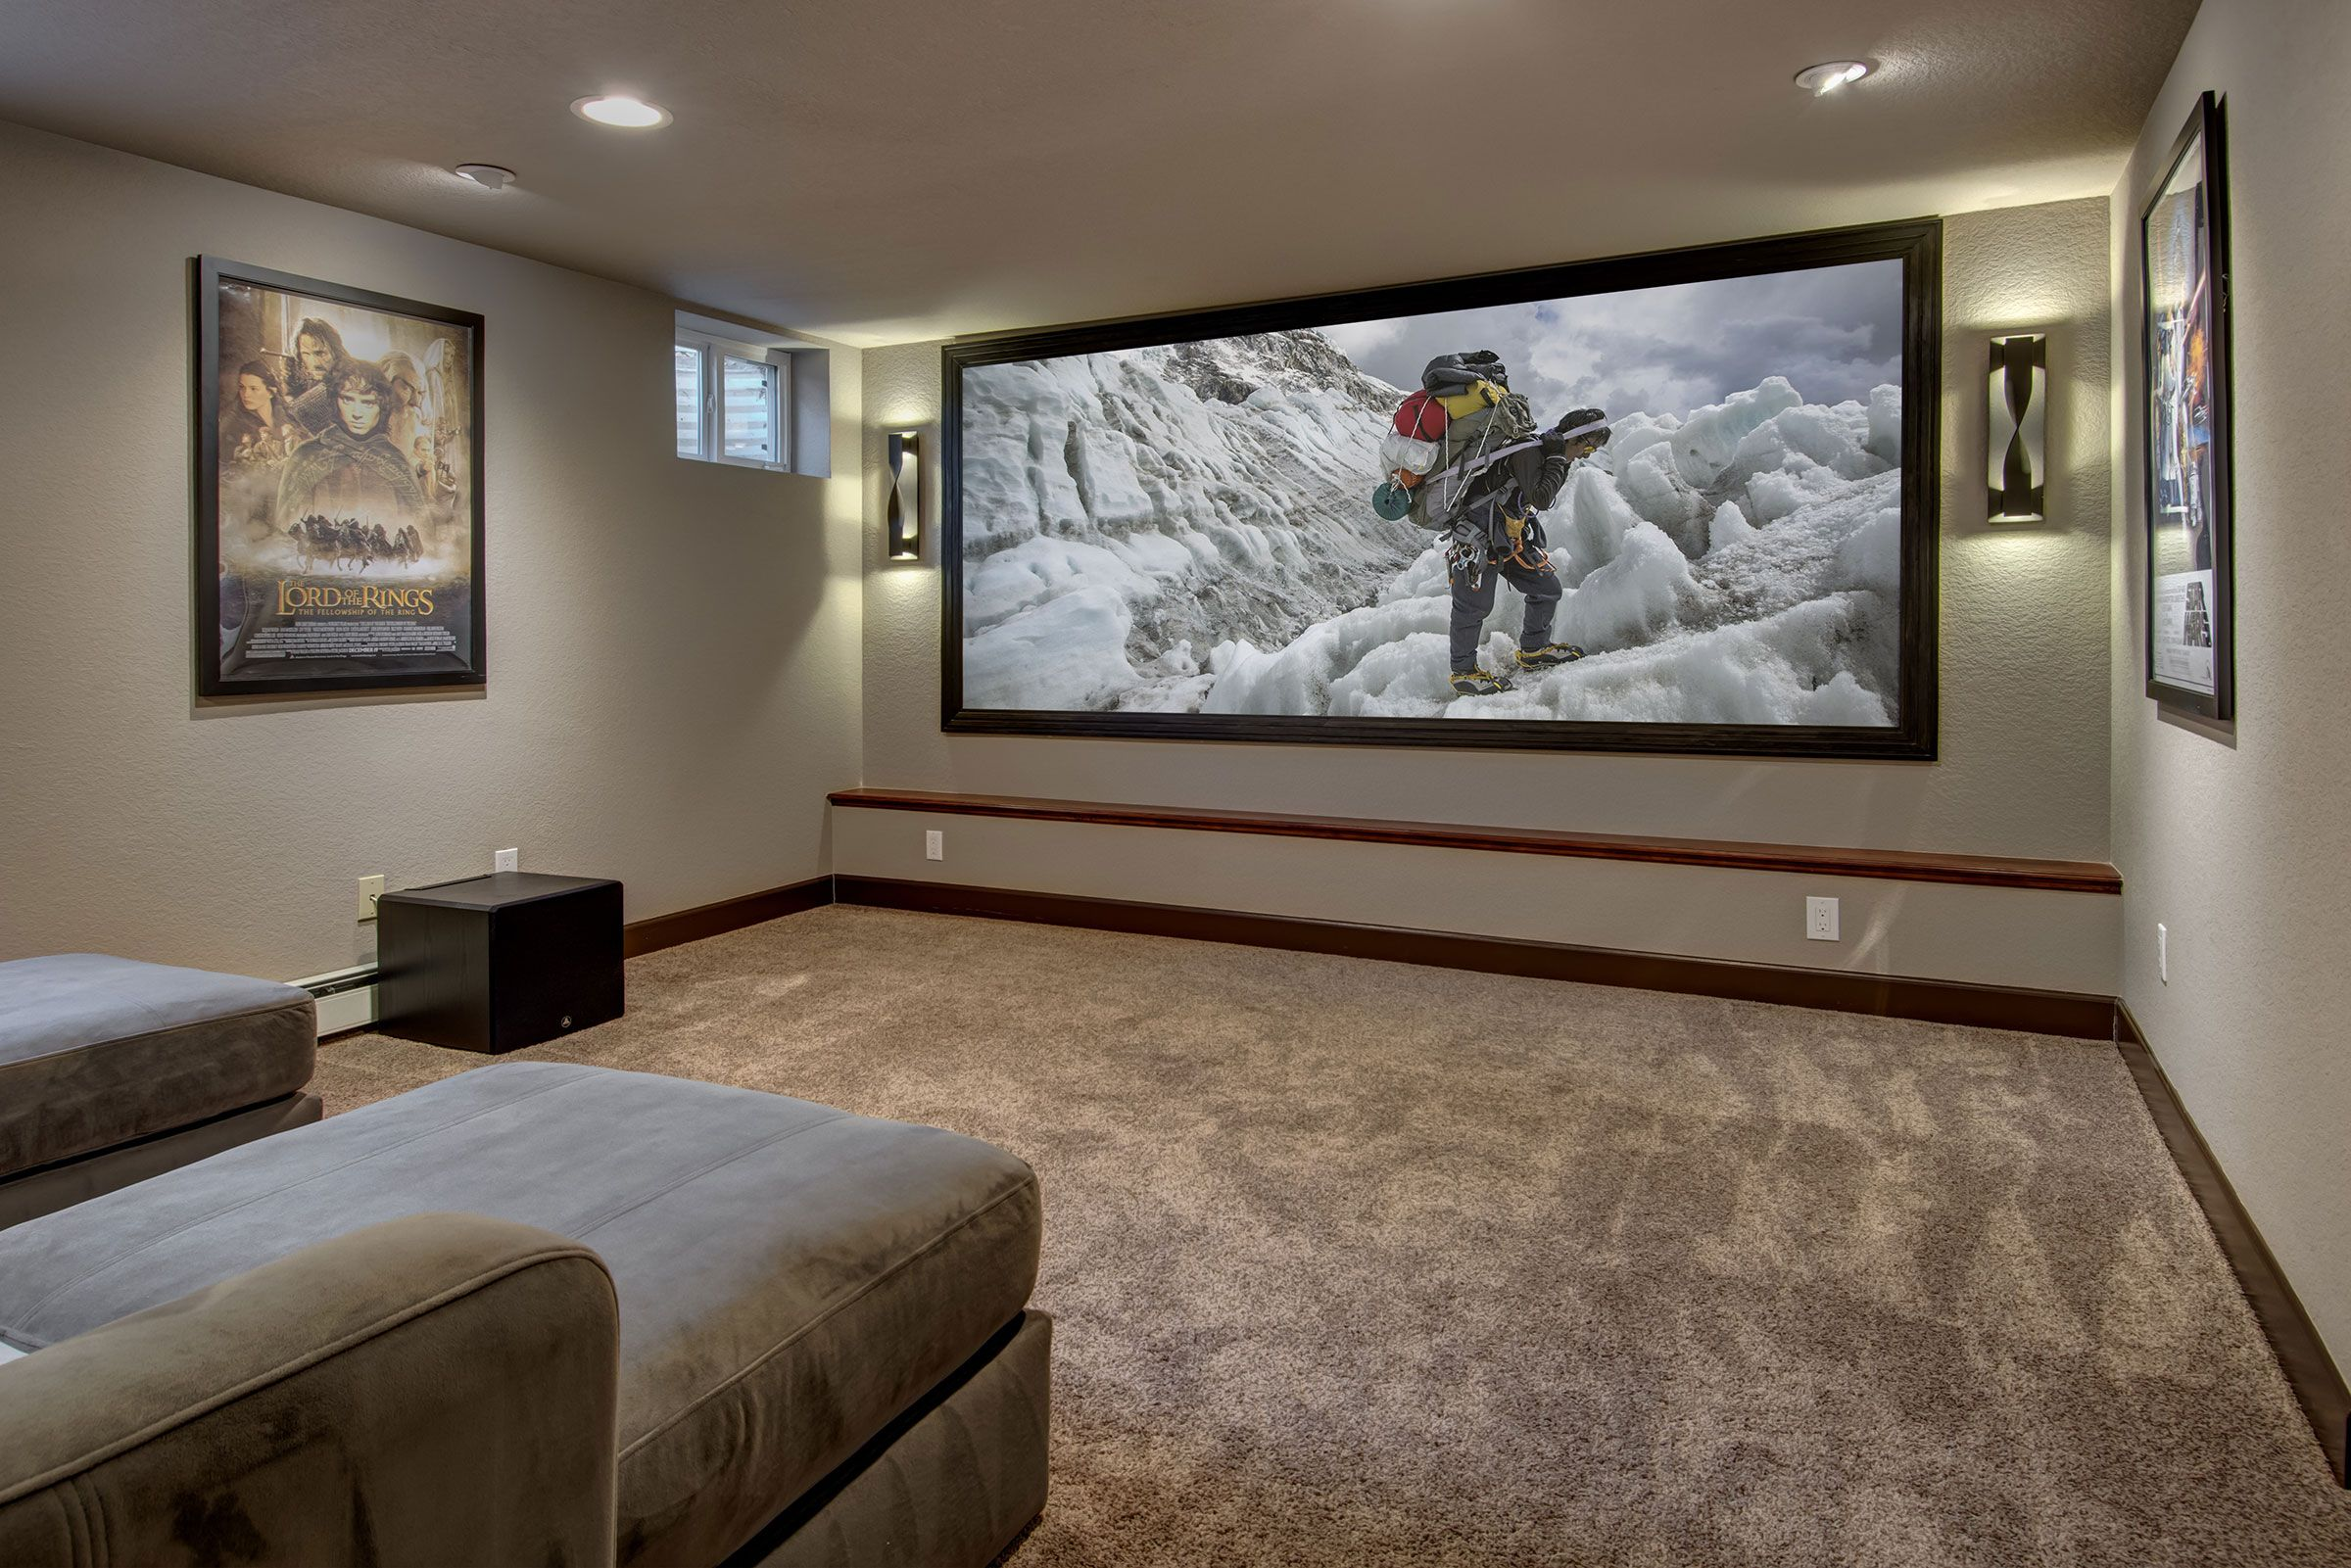 This Transitional Basement Design Has A Simple Theme Create A Great Movie Watching Experience In Small Home Theaters Home Theater Design Home Theater Seating